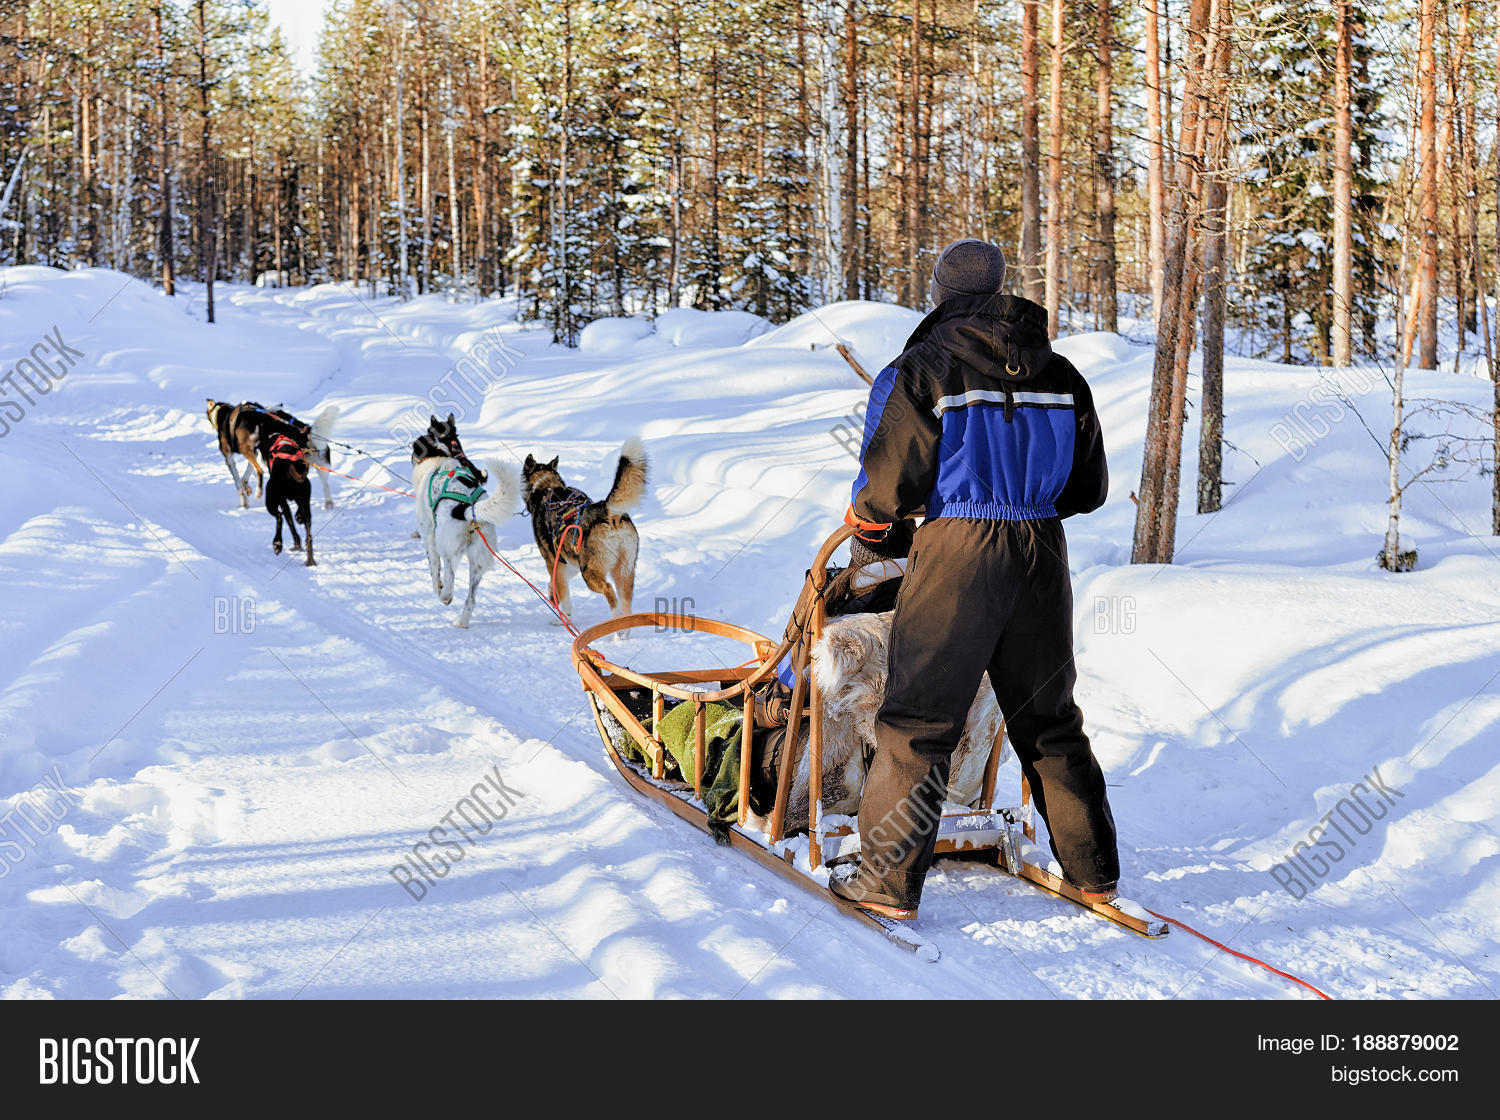 Man riding husky dogs sledge in winter snowy forest in Rovaniemi Lapland Finland